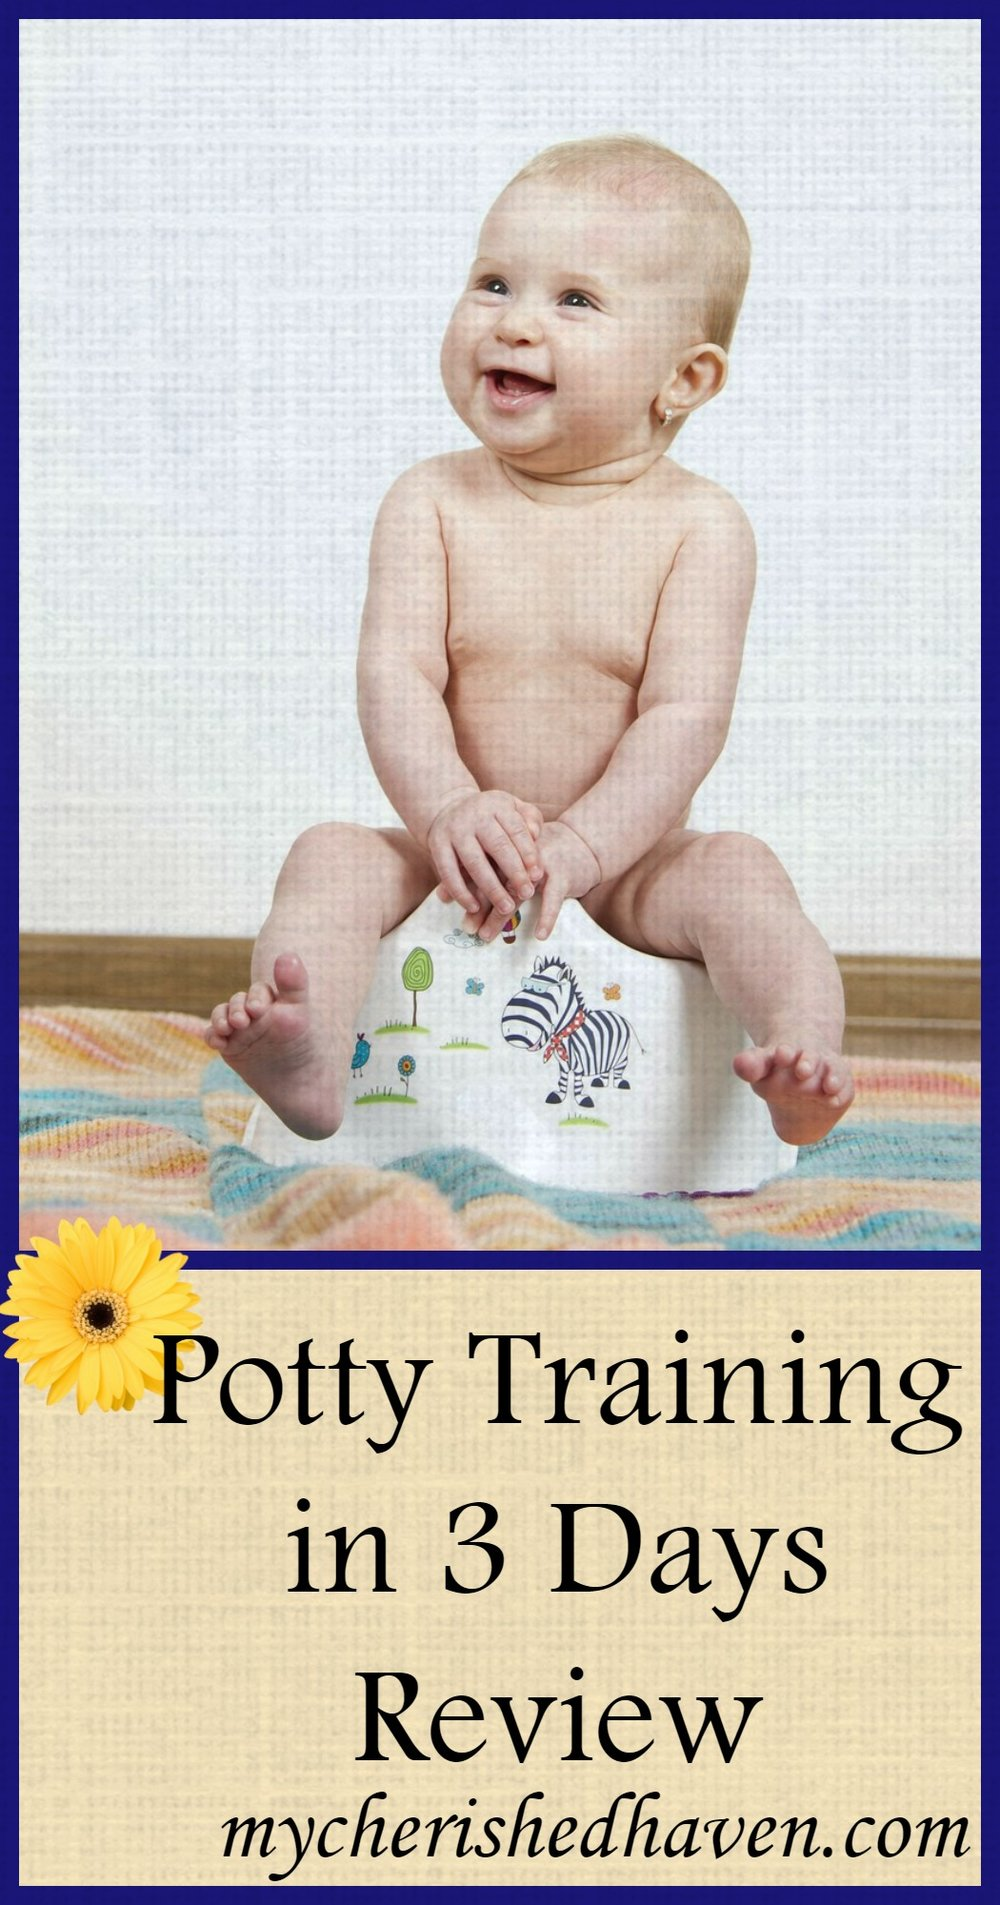 pottytrainingin3days